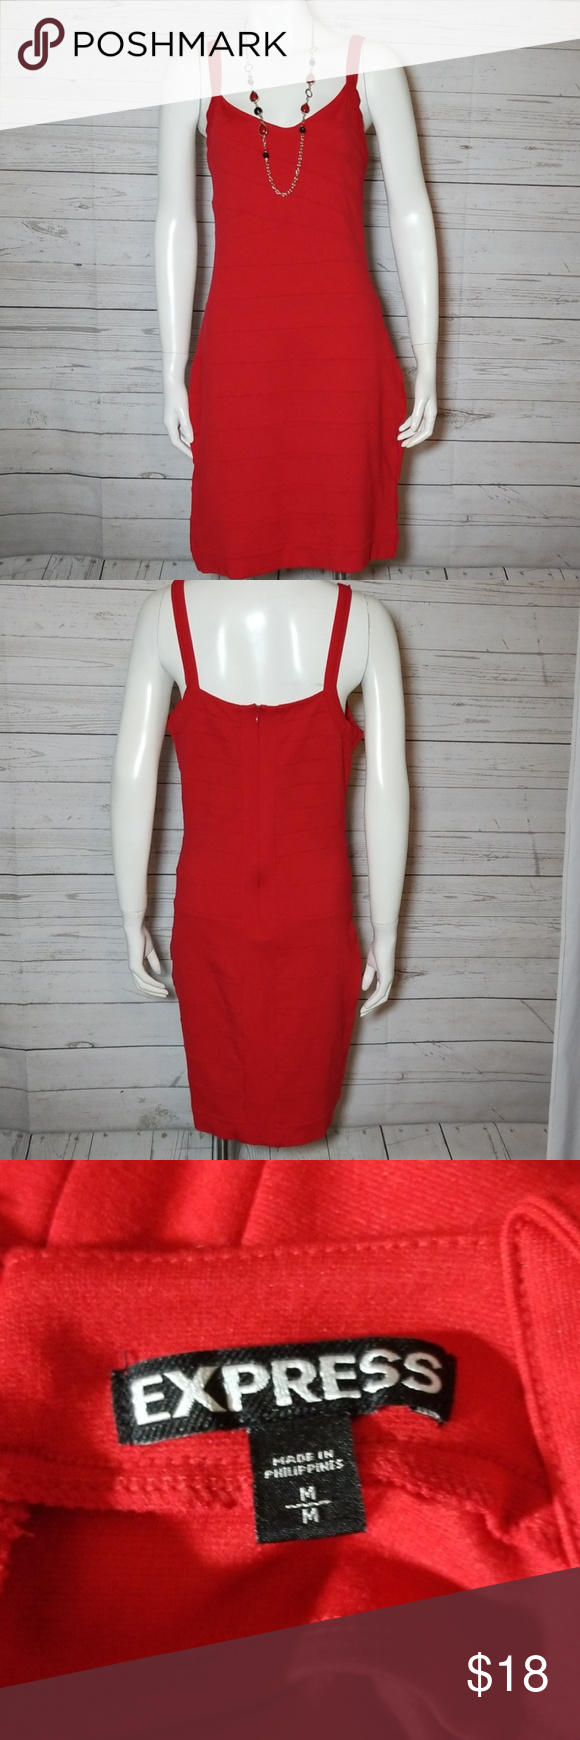 🌼Express Ribbed Red Dress Size Medium Waist laying flat. 15 1/2 inches stretch material. Waist to hem 20 inches. #0131 Express Dresses